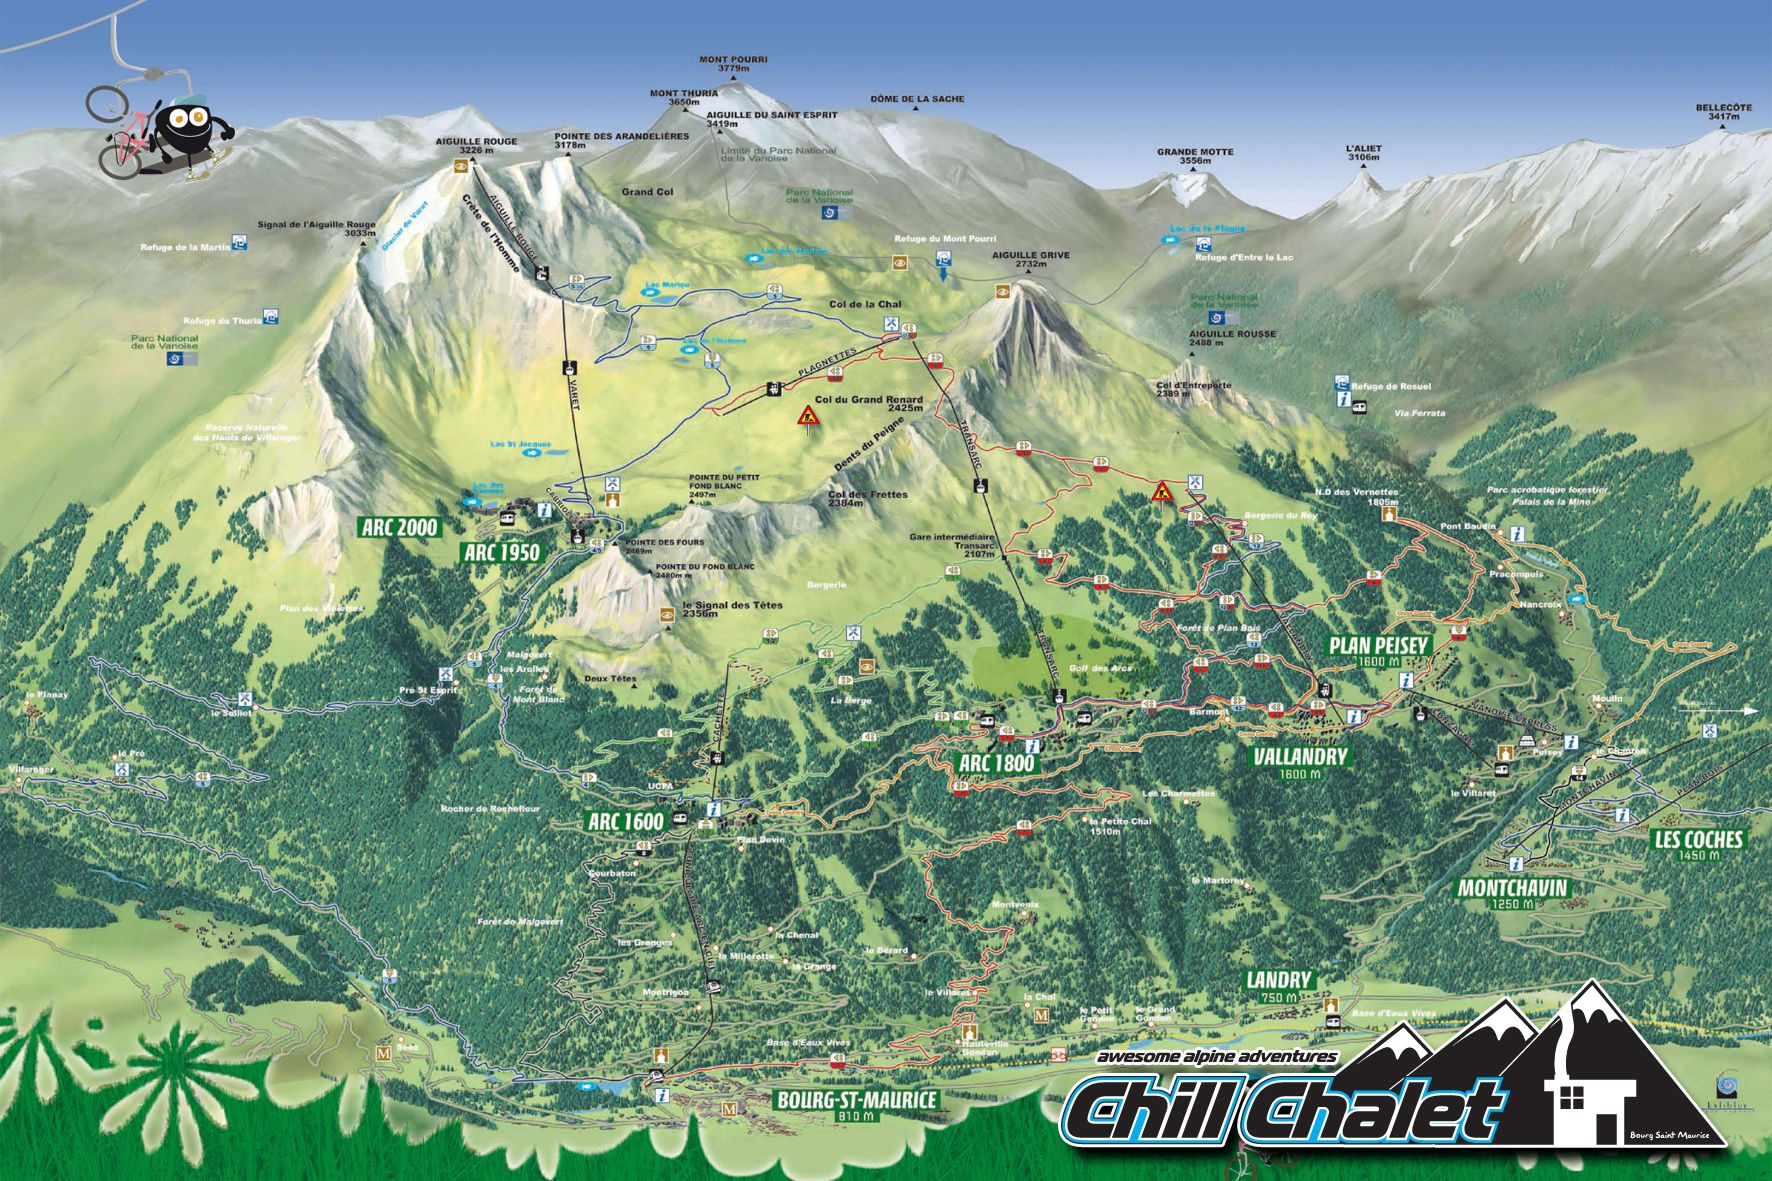 Les Arcs bike map Great mountain biking options back country